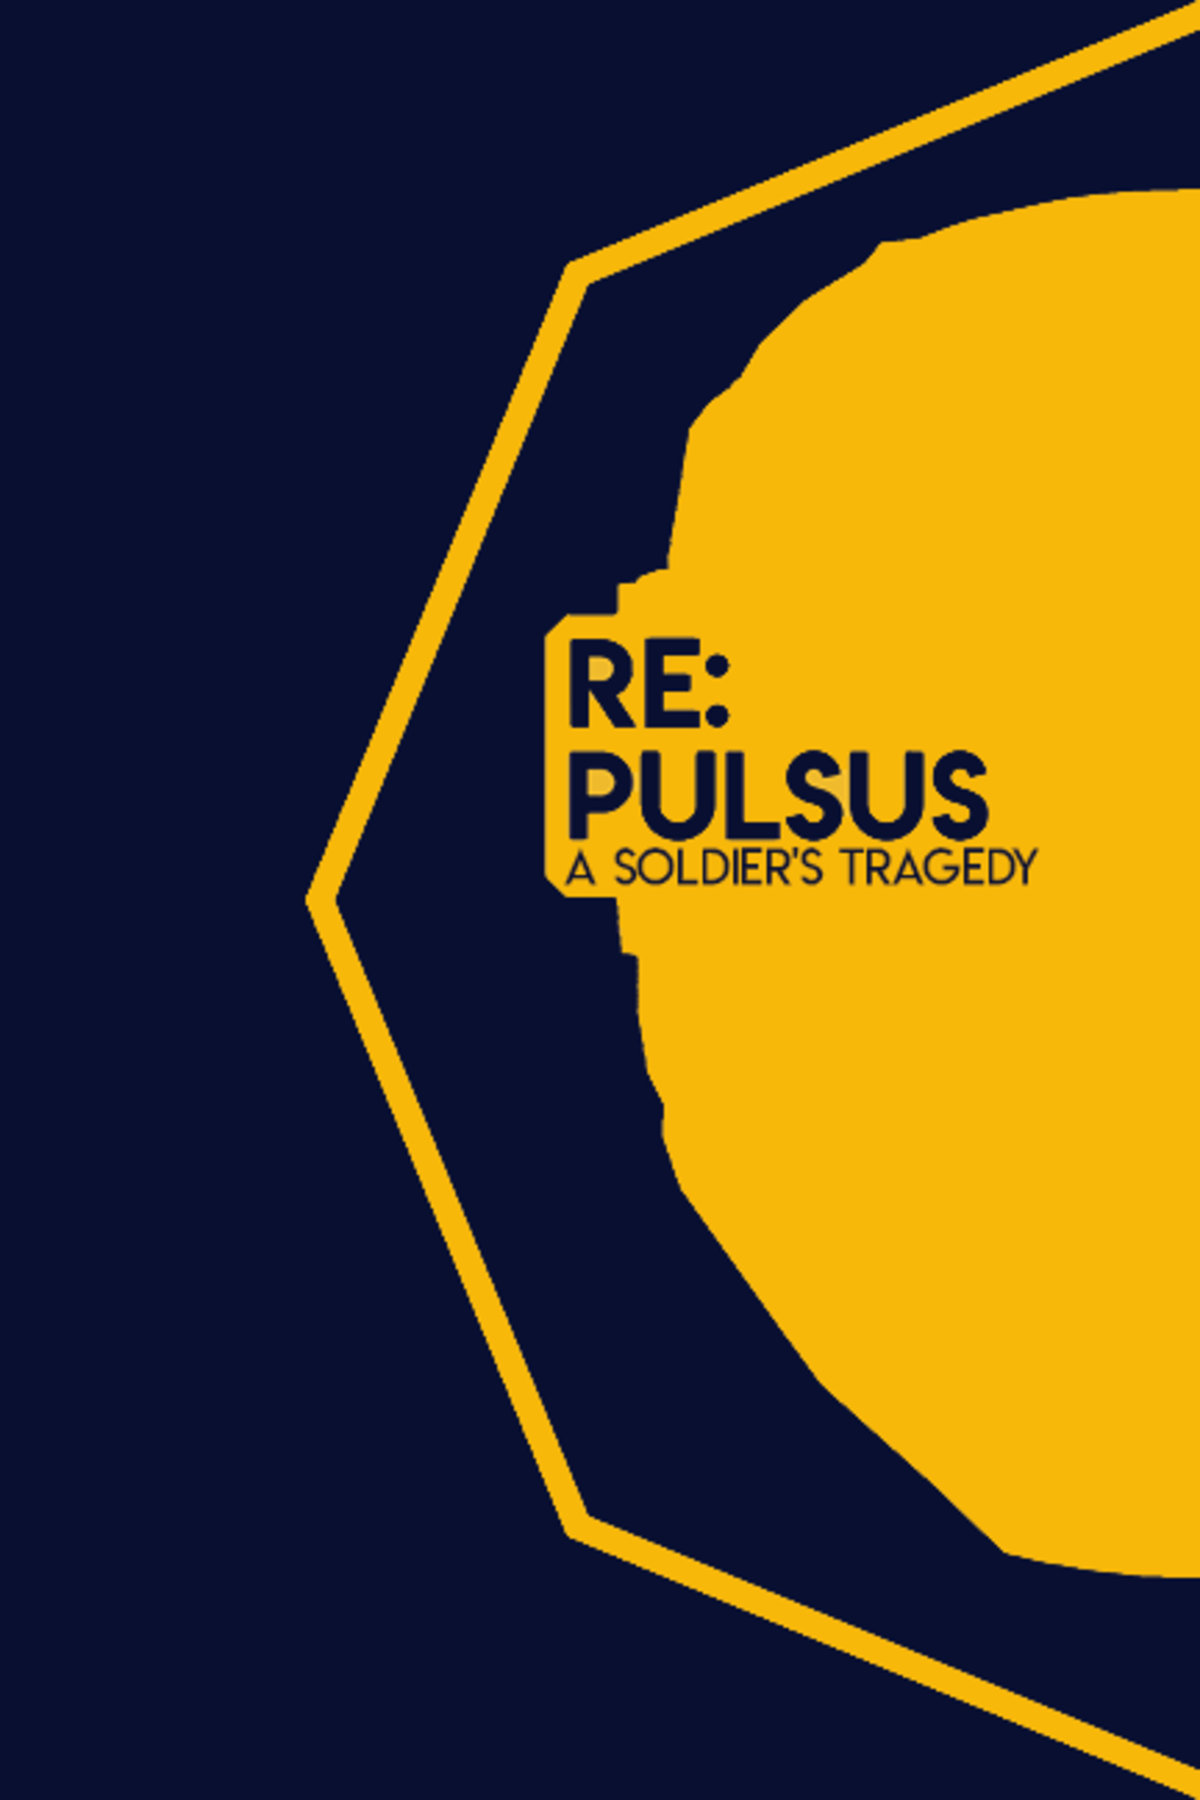 Novel Cover . join list: RePulsus (8 subs)Mention History Went back through and noticed some issues with the D on tragedy, went through and fixed